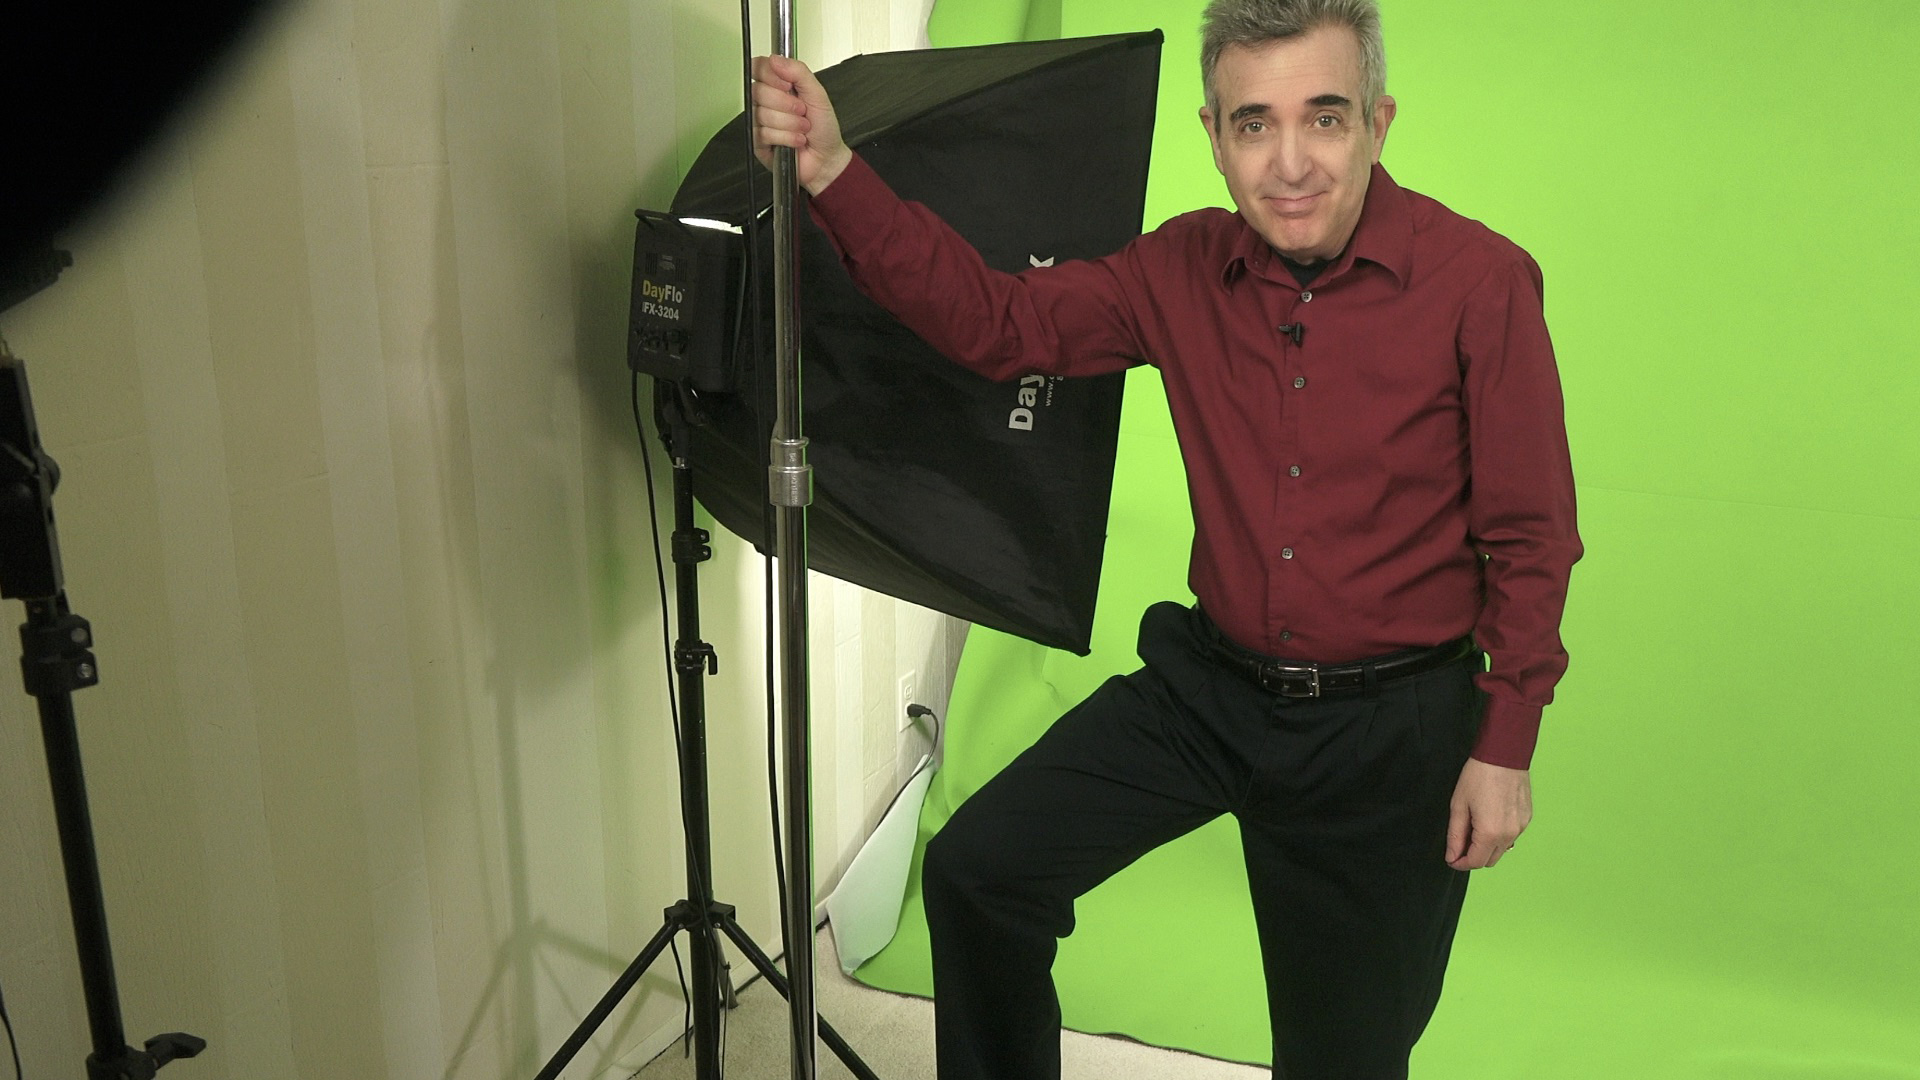 How to Set Up Your On-Demand Home Video Studio Pt. 2 of 2